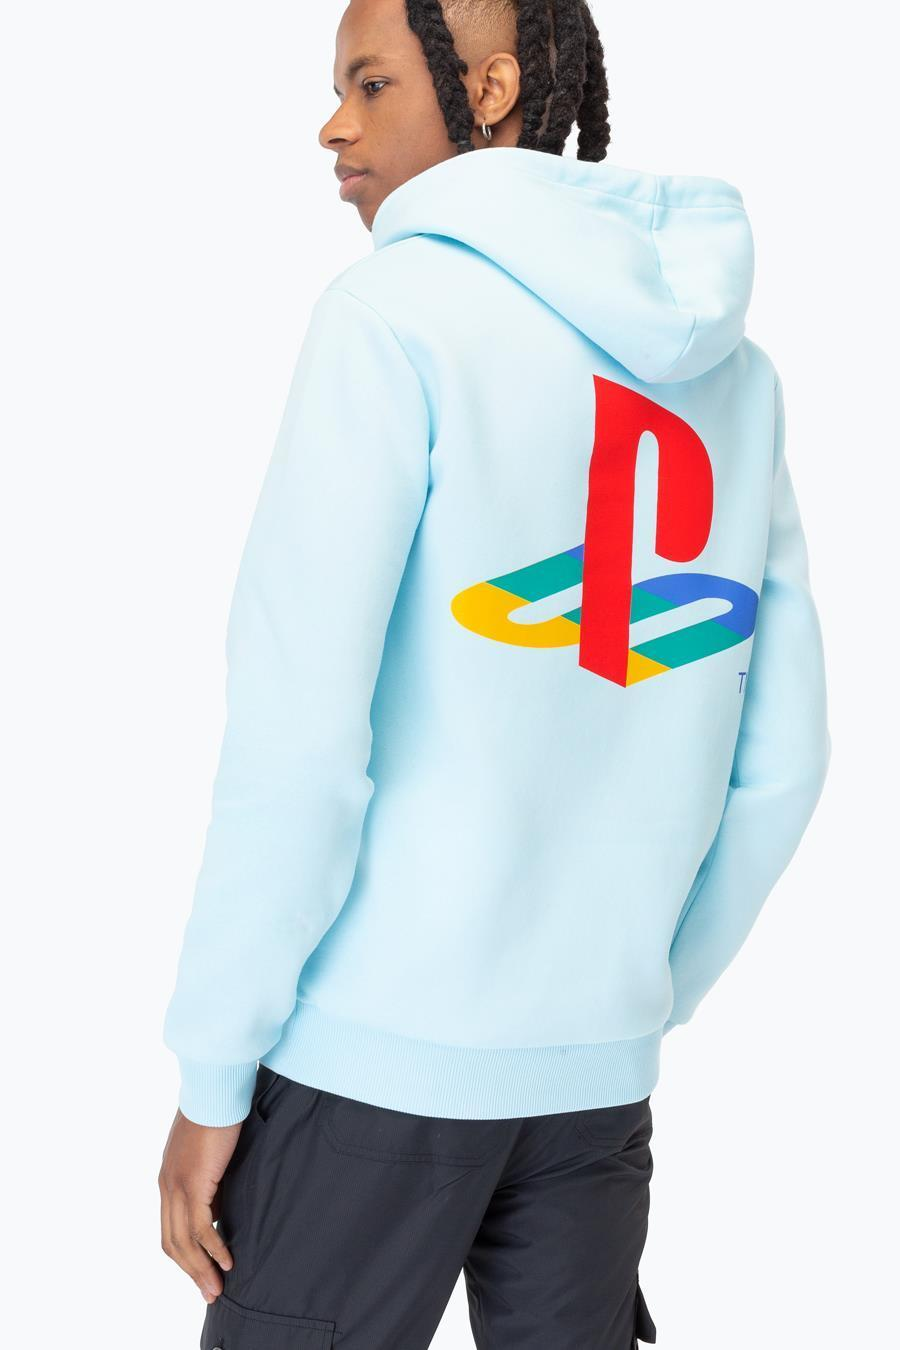 Just Hype: PlayStation Blue Crest Mens Pullover Hoodie - Small image